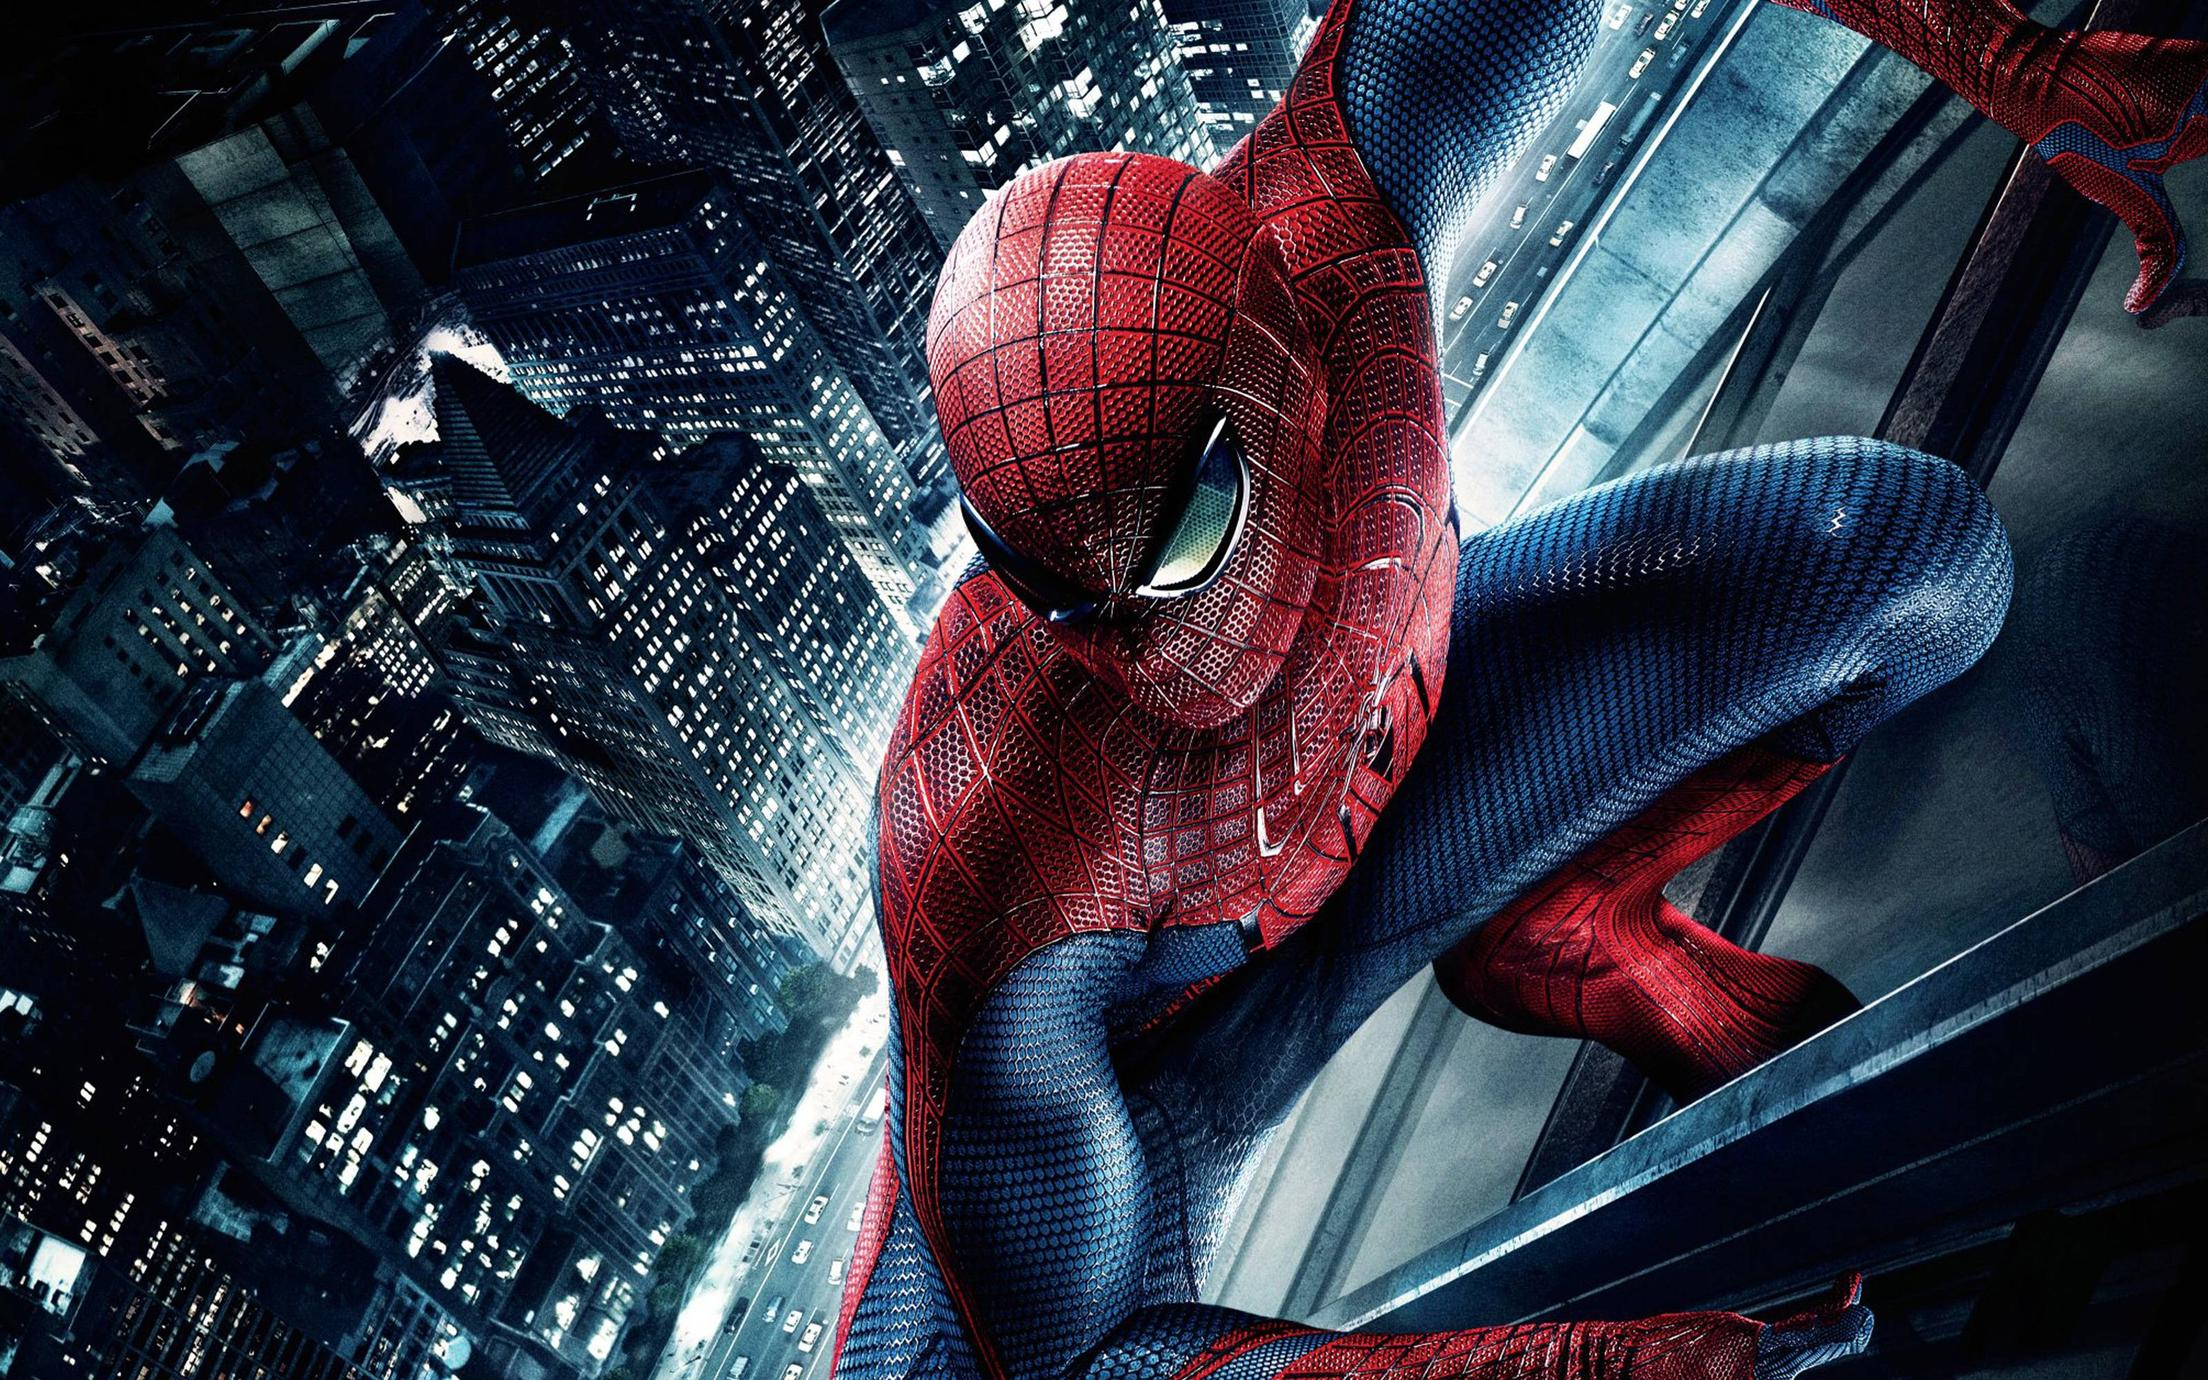 daily wallpaper: the amazing spiderman | i like to waste my time